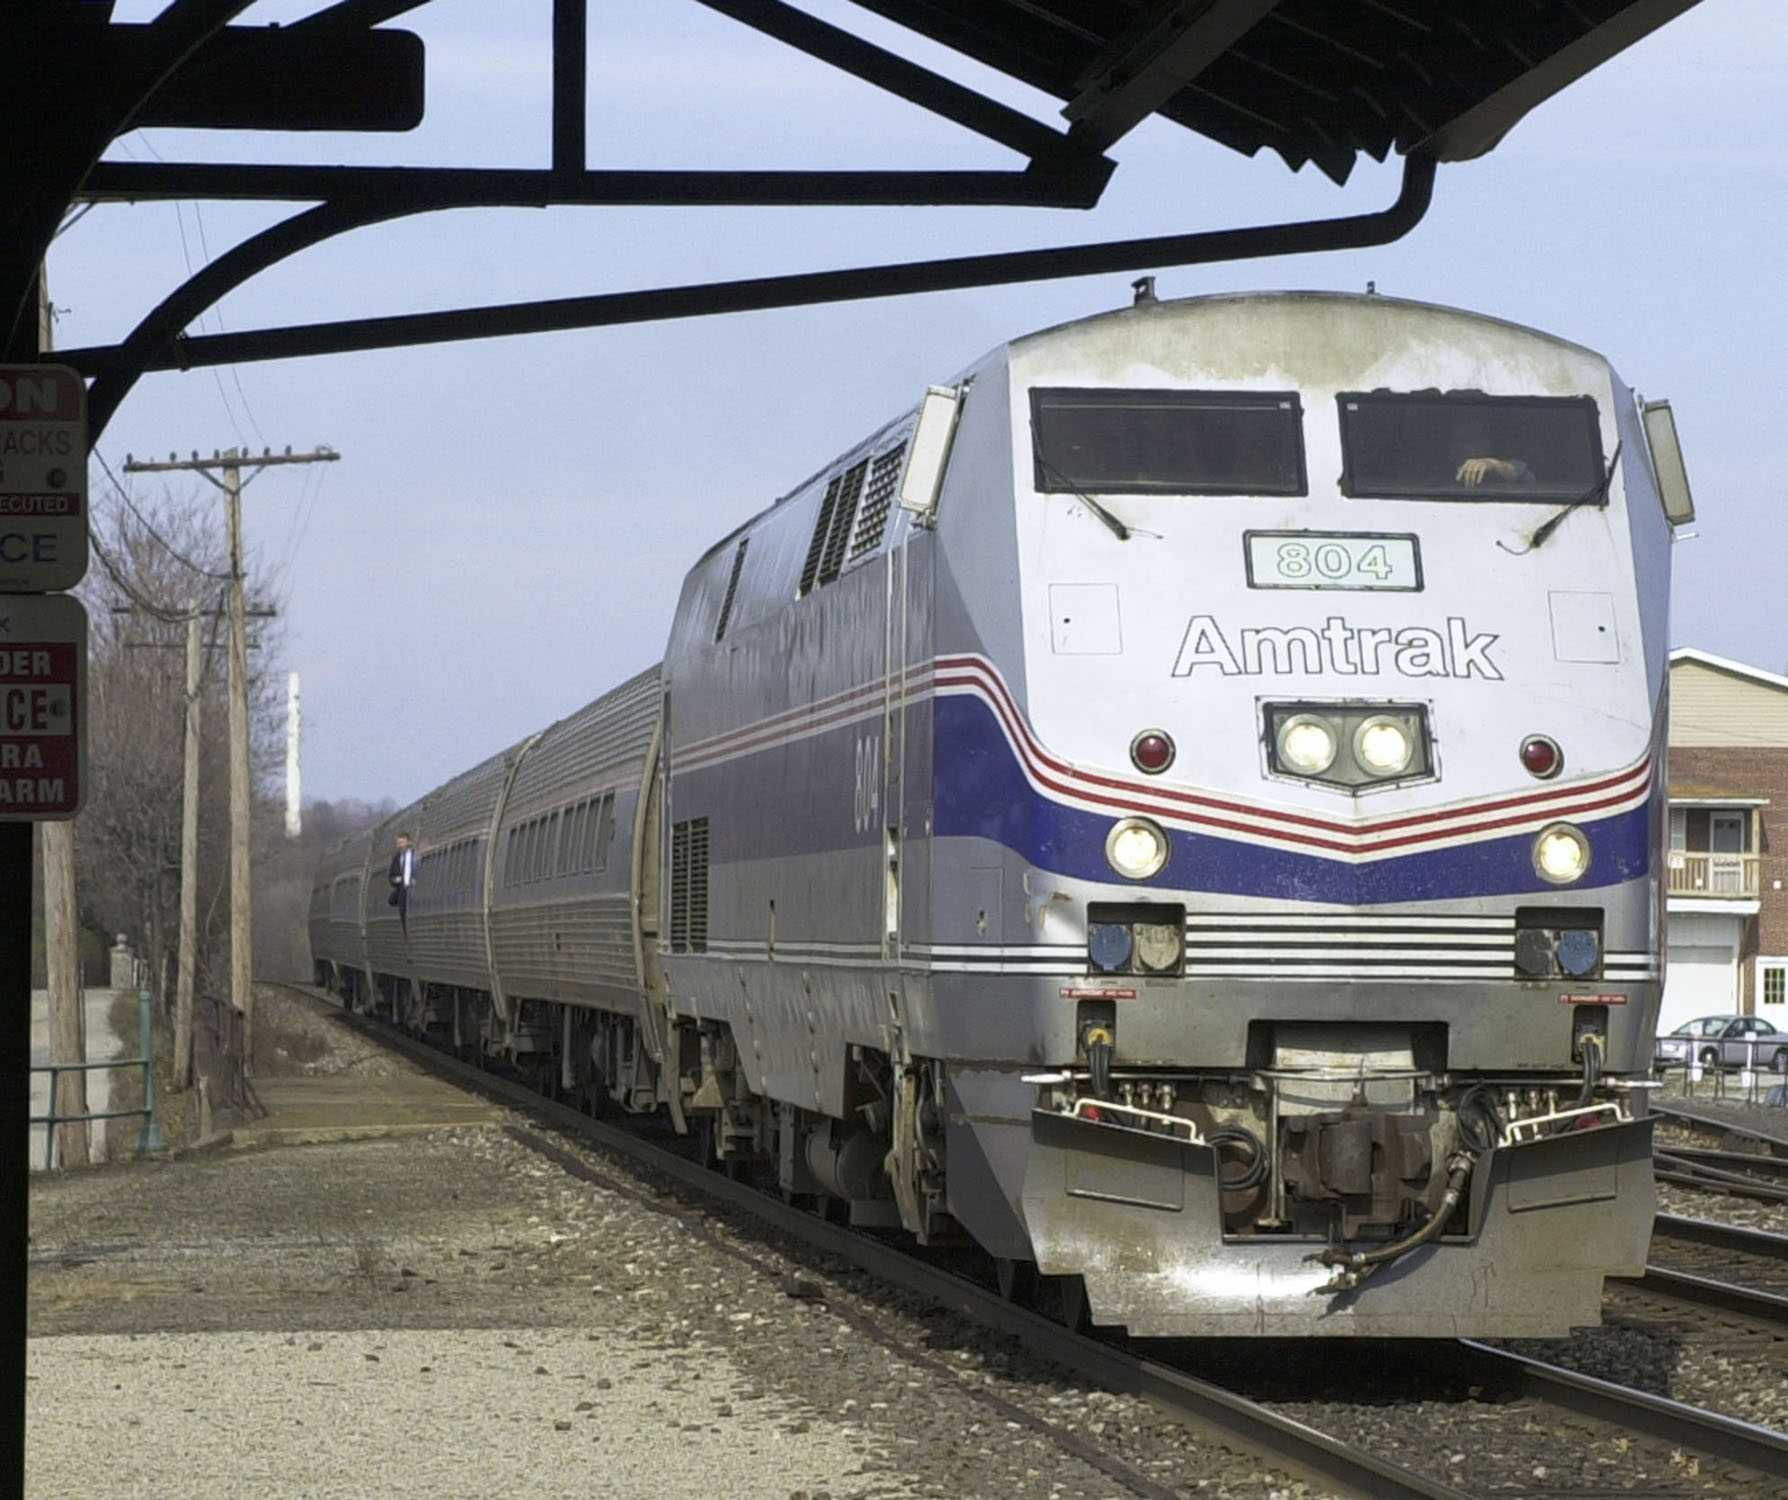 Amtrak conductor shot at Naperville station; Suspect in custody